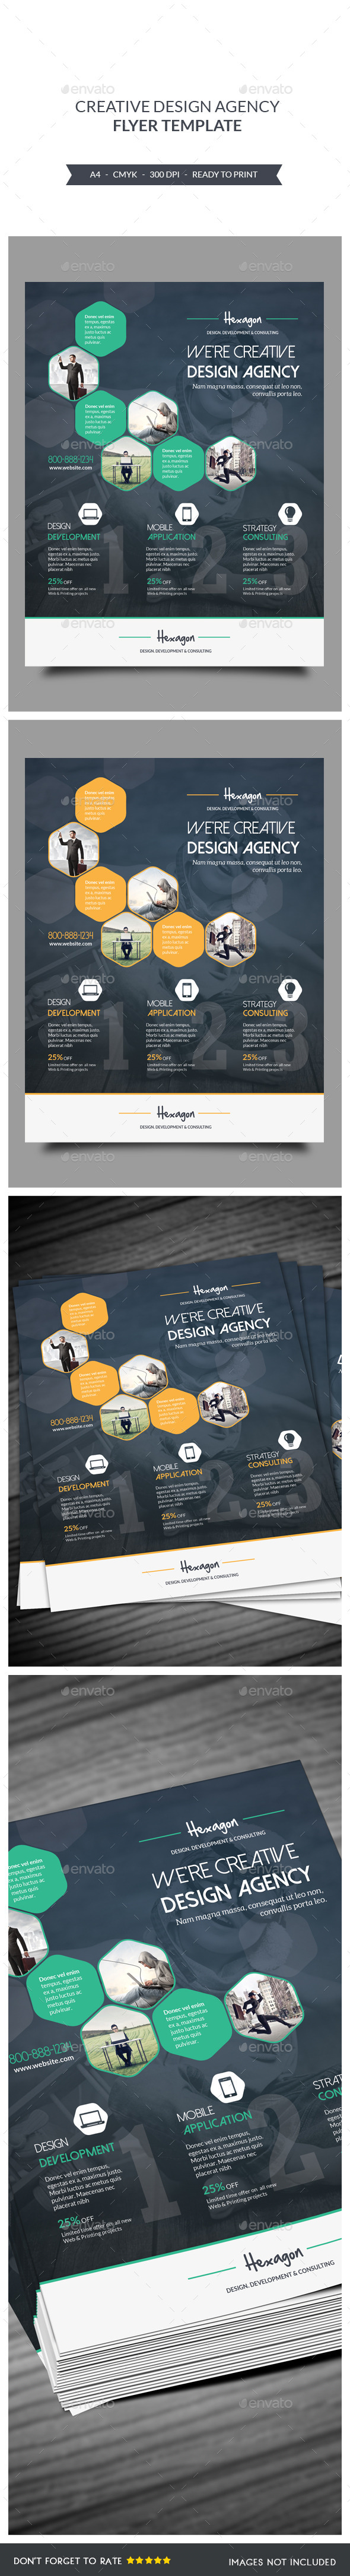 Design Agency Flyers Template - Corporate Flyers